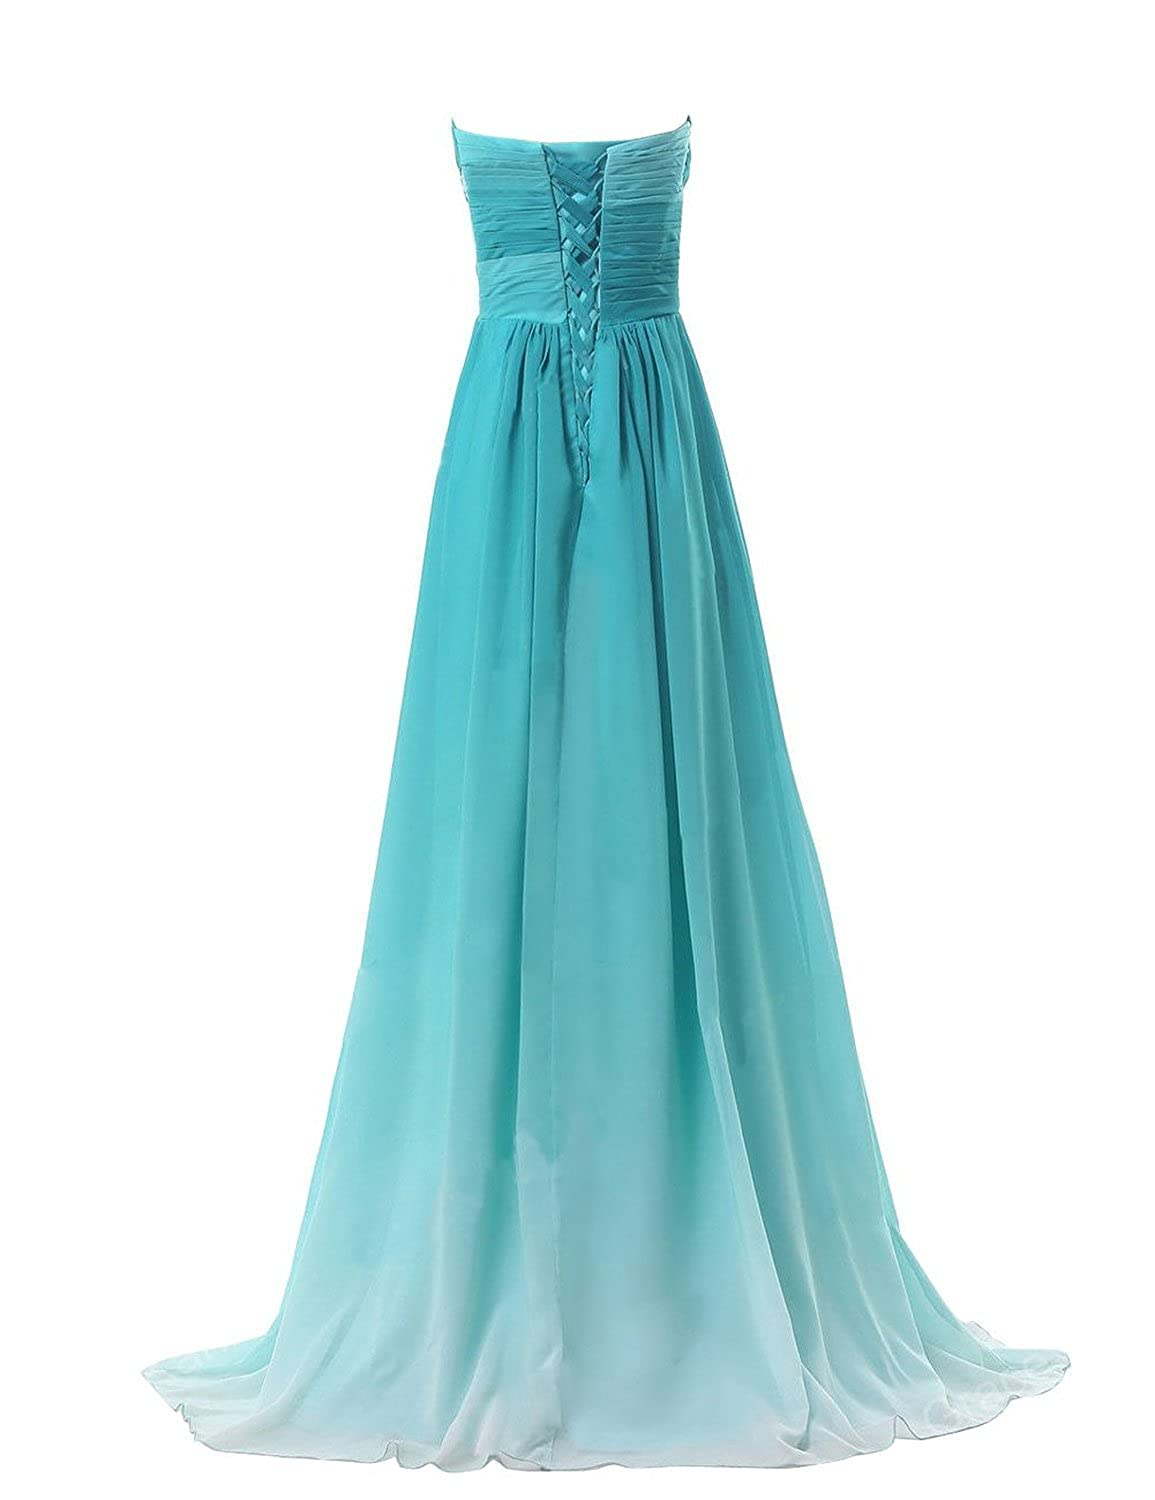 Sweetheart Womens Formal Evening Gowns Chiffon Long Bridesmaid Prom Dresses (14, green) at Amazon Womens Clothing store: